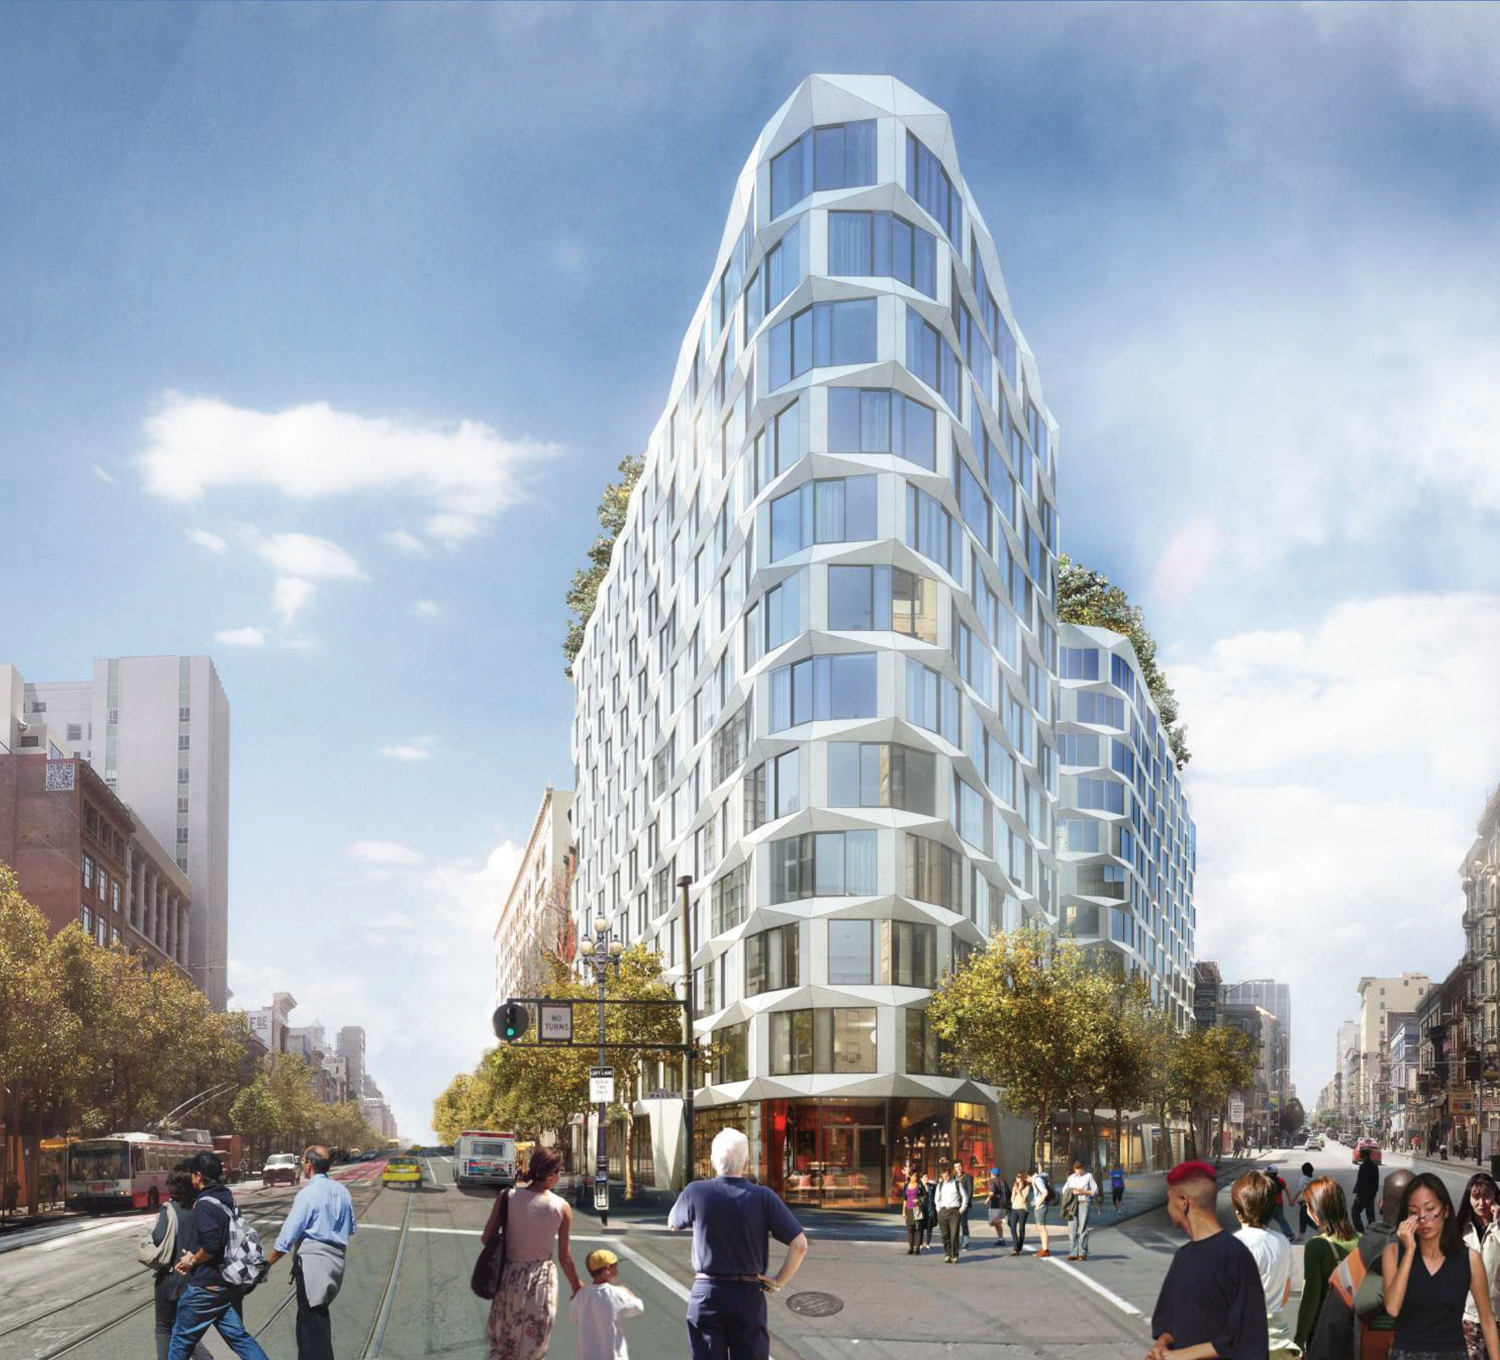 Serif at 950 Market Street view, design by Handel Architects, visualization by Atchain